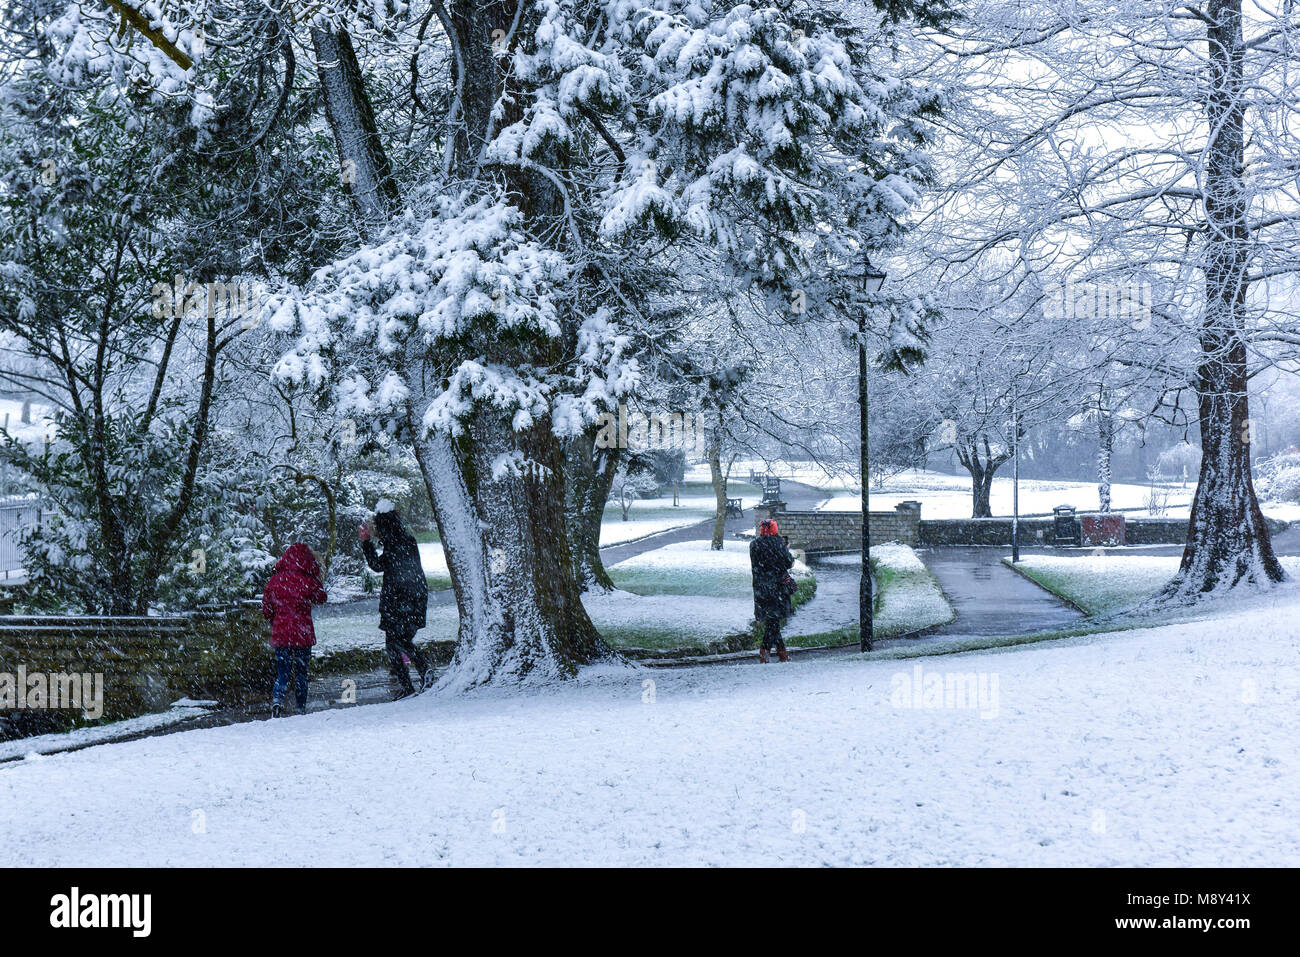 People enjoying the heavy snow fall on Trenance Gardens in Newquay Cornwall. - Stock Image